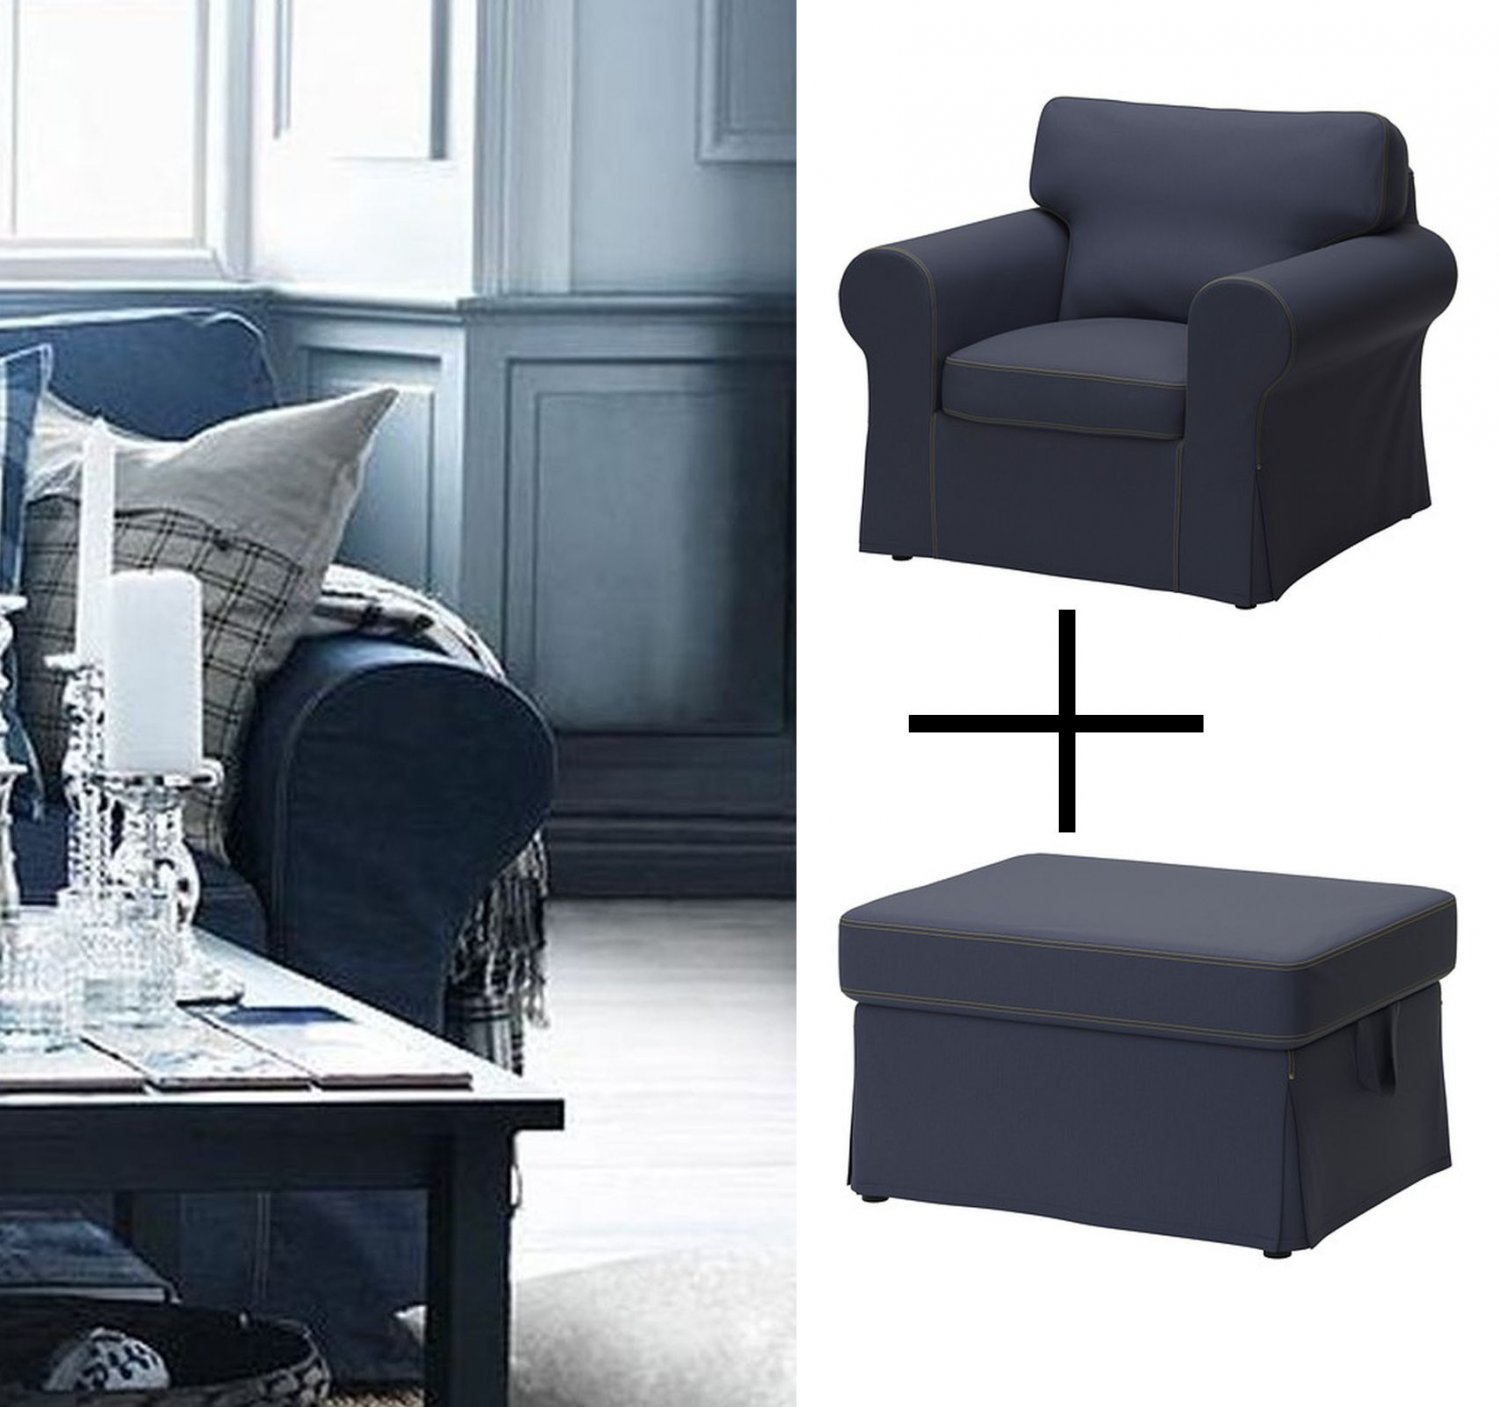 Ektorp Slipcovers Ikea Ektorp Armchair Footstool Covers Chair Ottoman Slipcovers Jonsboda Blue Denim